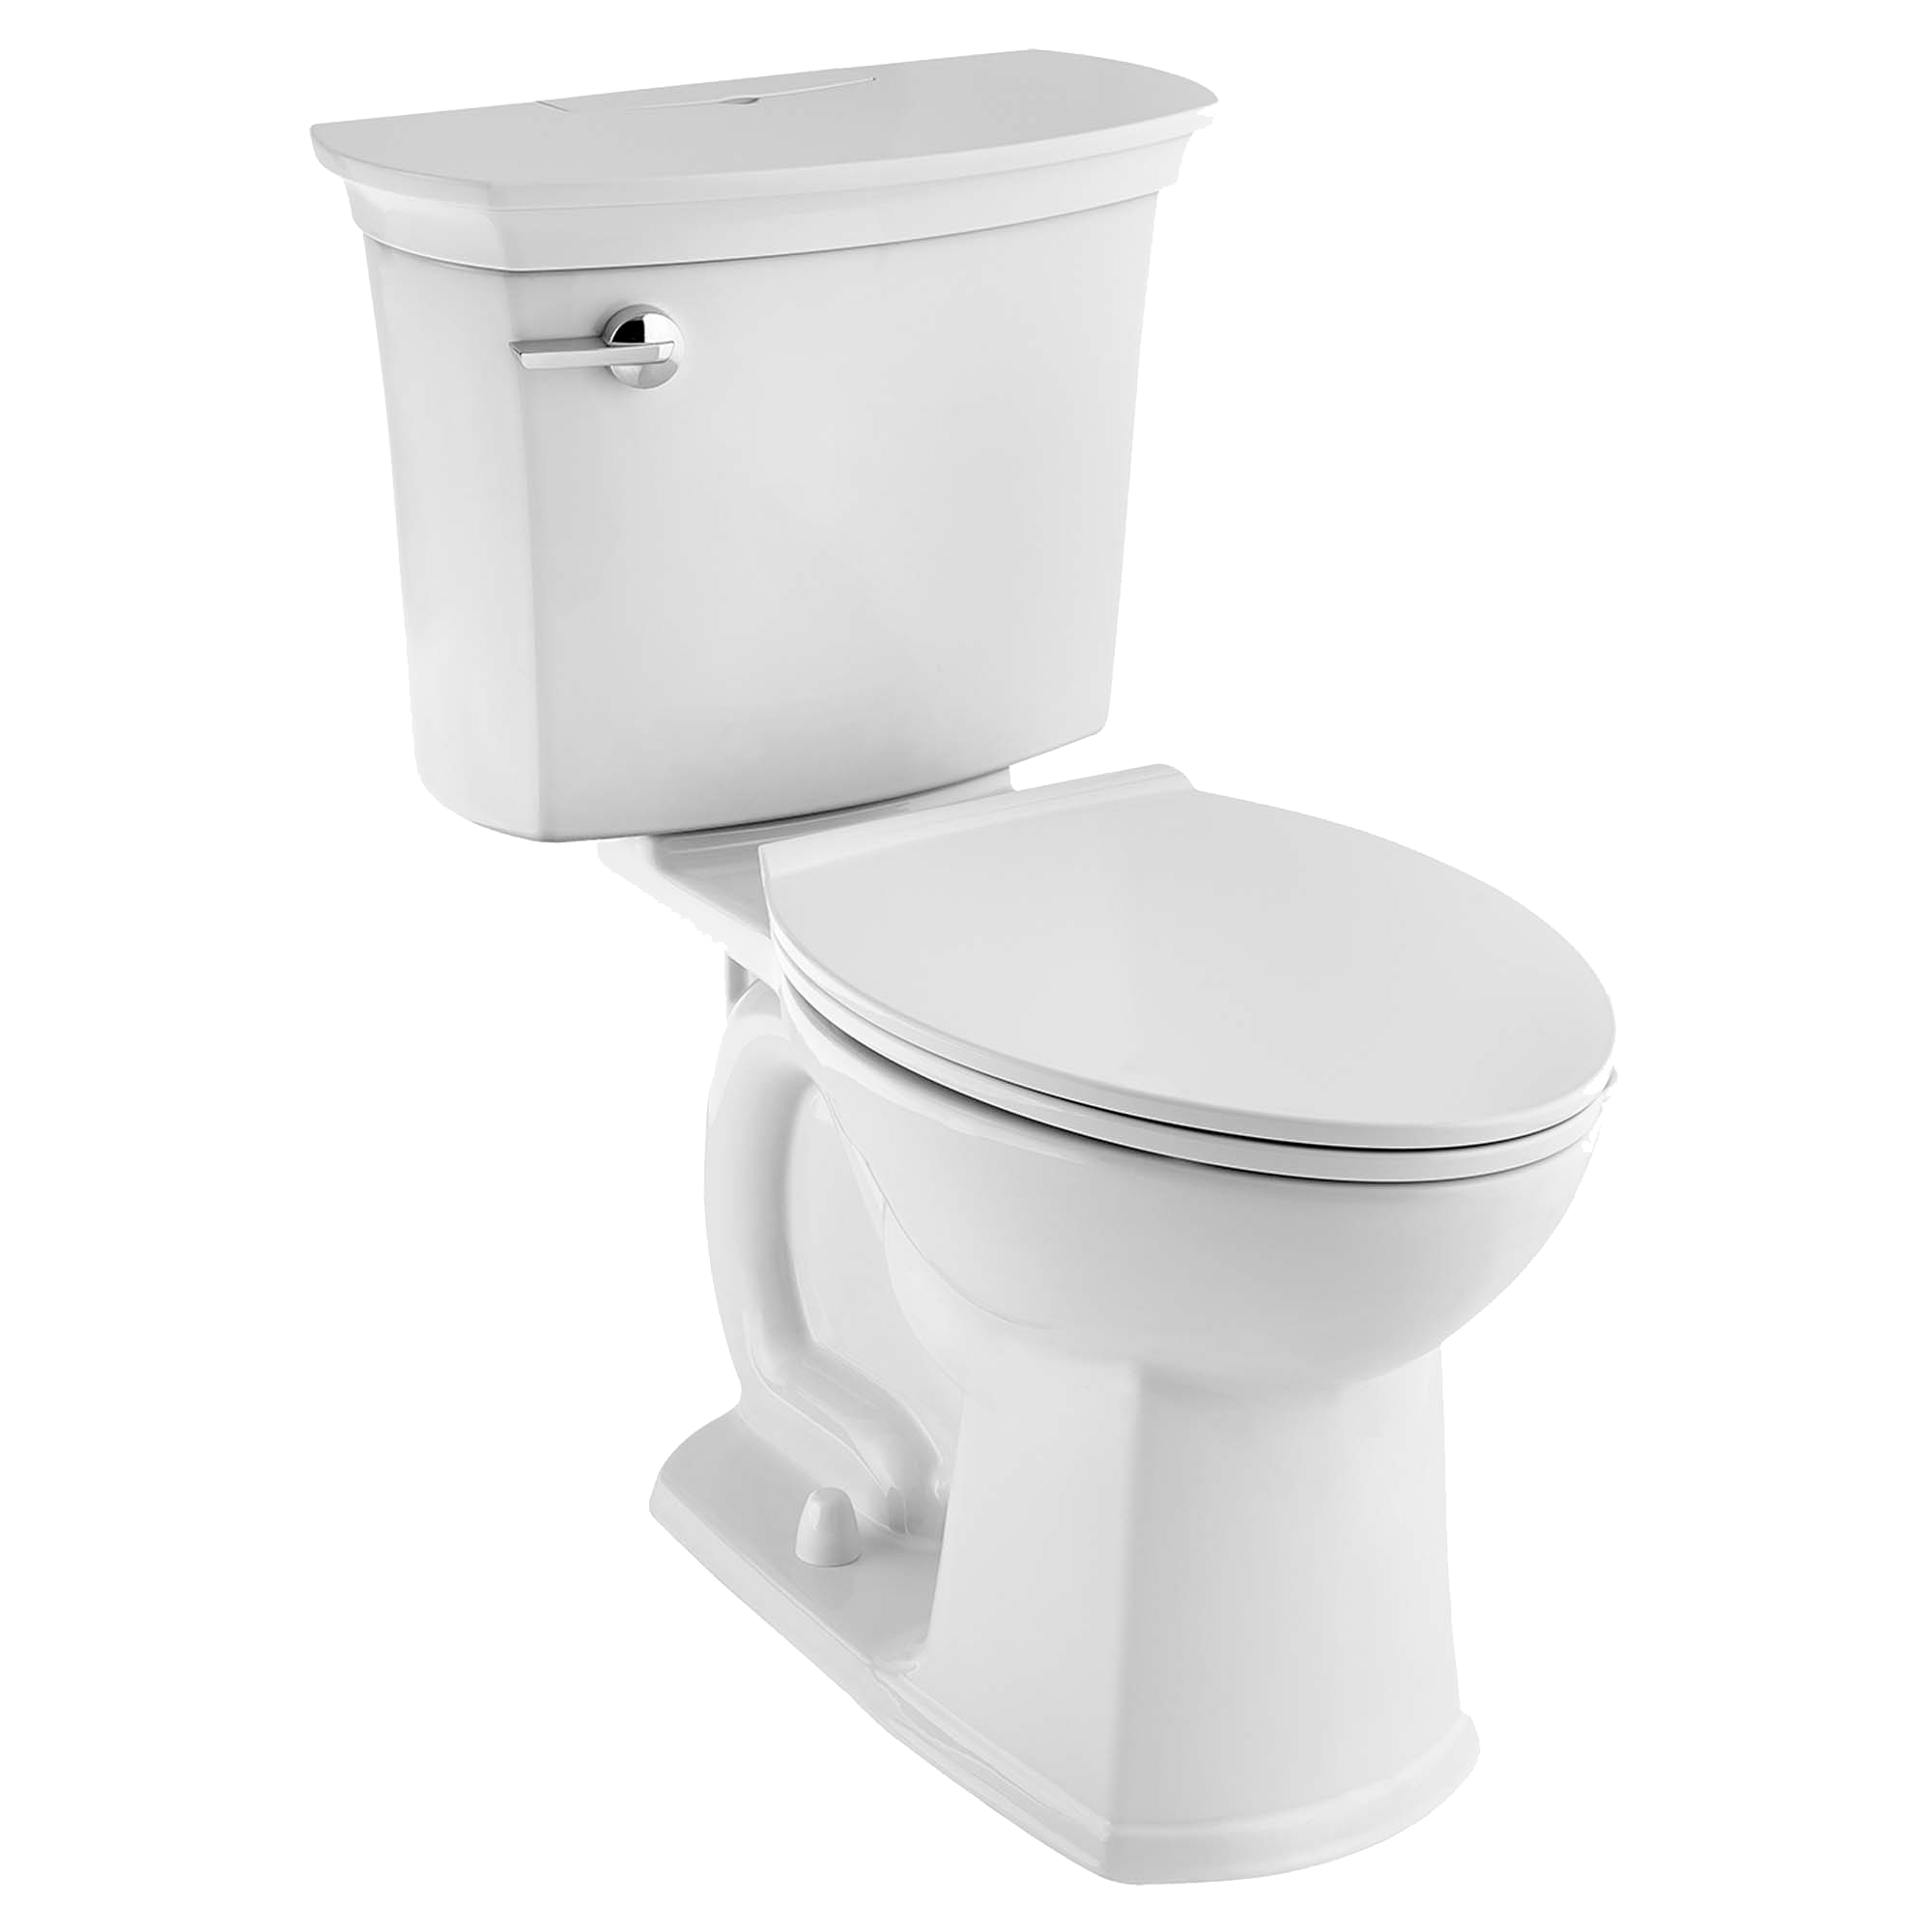 Toilet bowl clipart for house plans clip art free ActiClean Self-Cleaning Elongated Toilet | American Standard Toilets clip art free